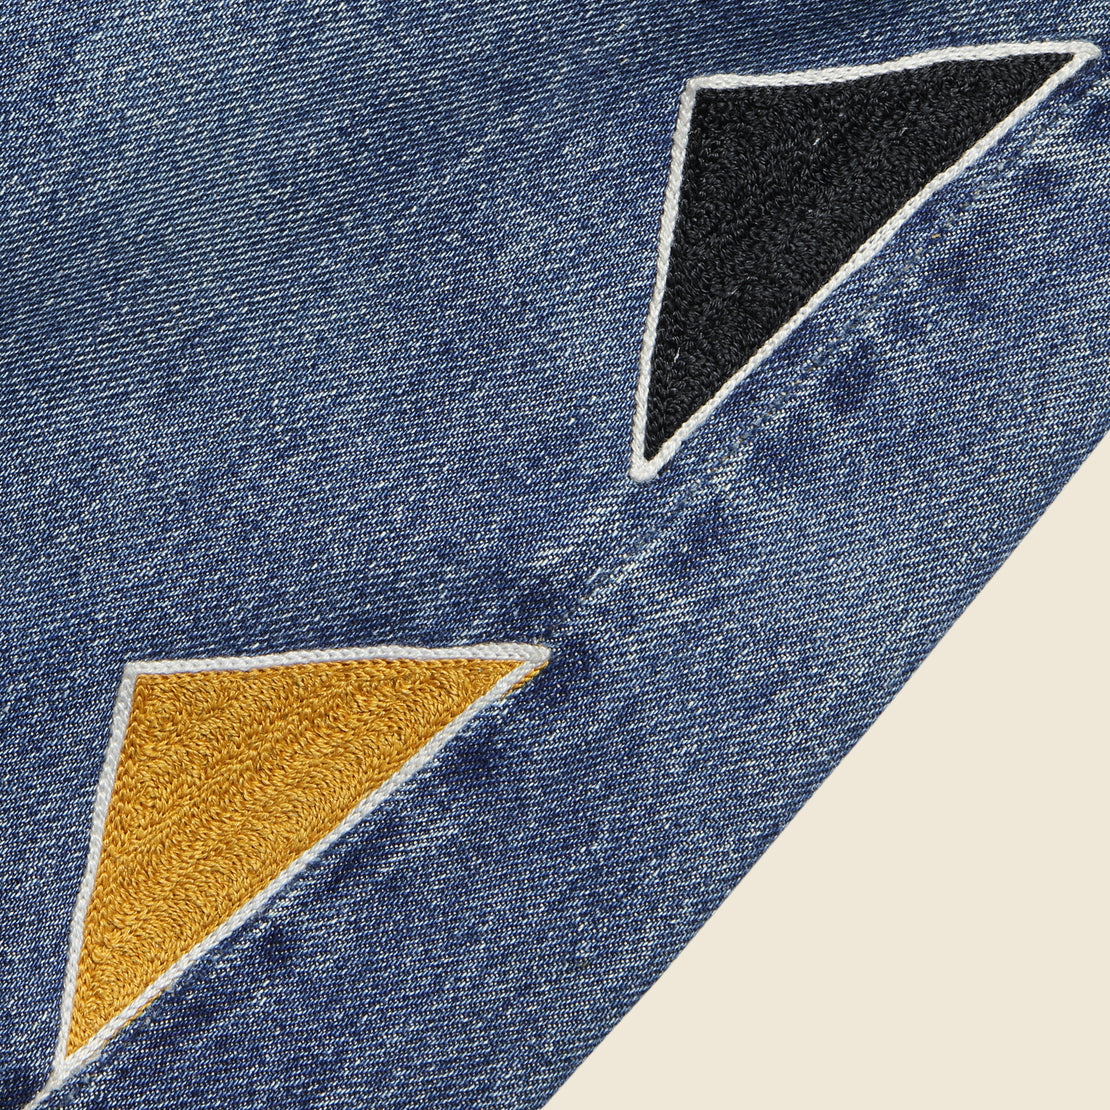 Triangle Pattern Levi's 501 Jean - Multi